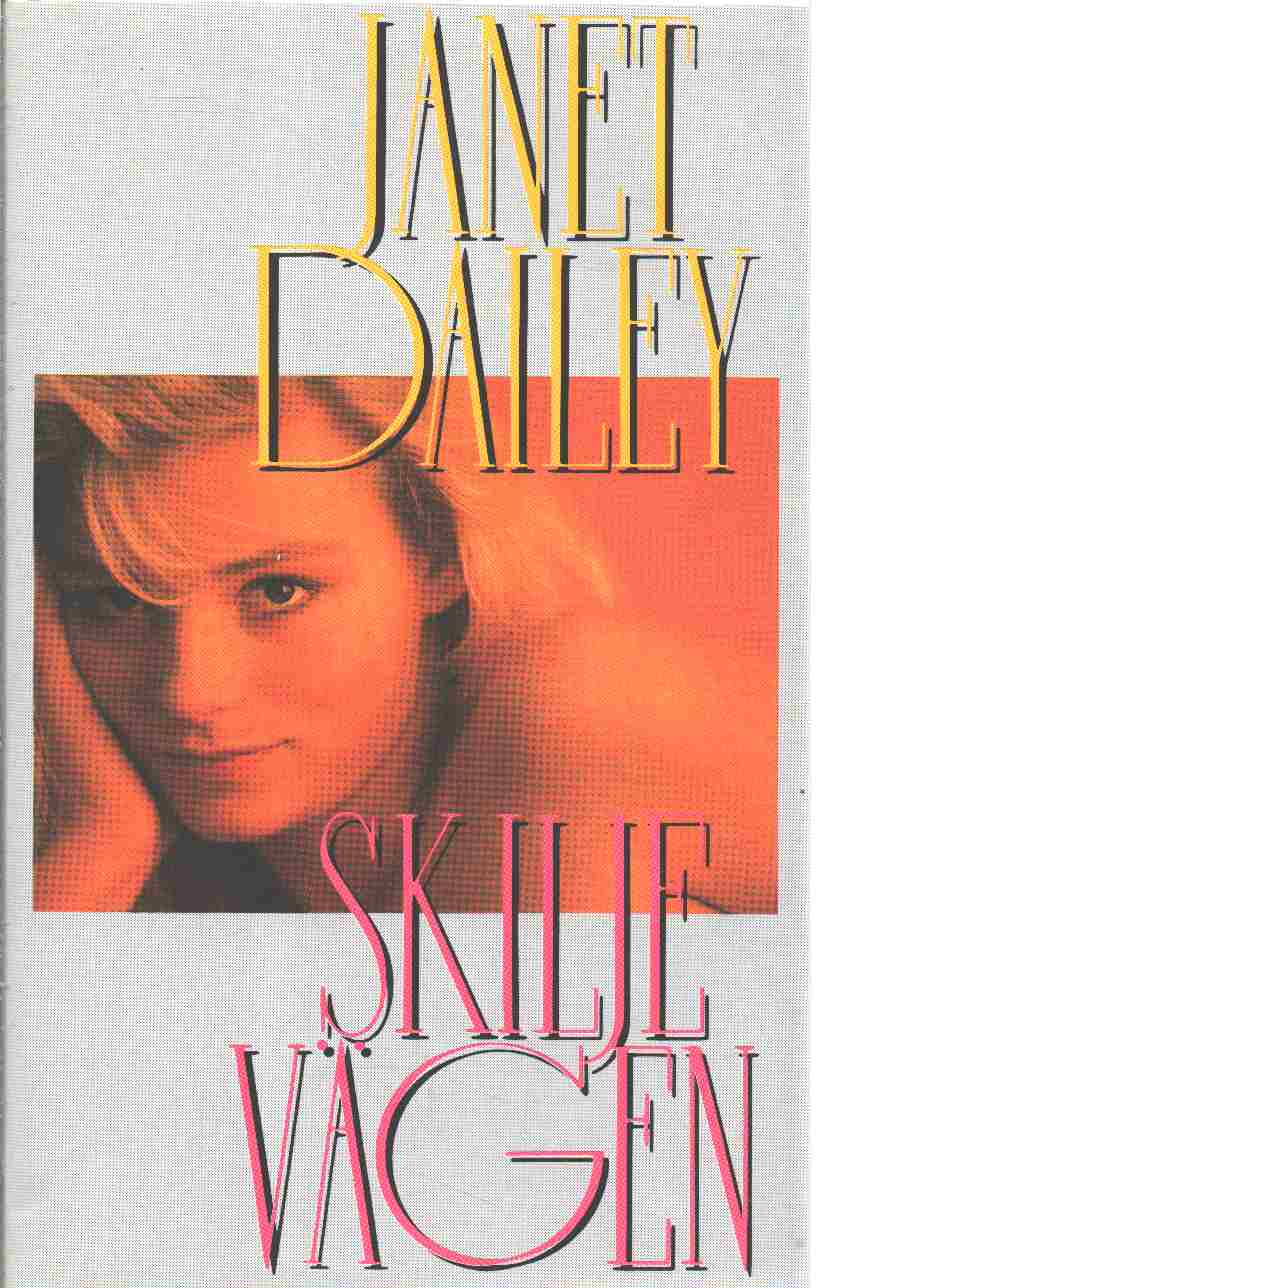 Skiljevägen - Dailey, Janet